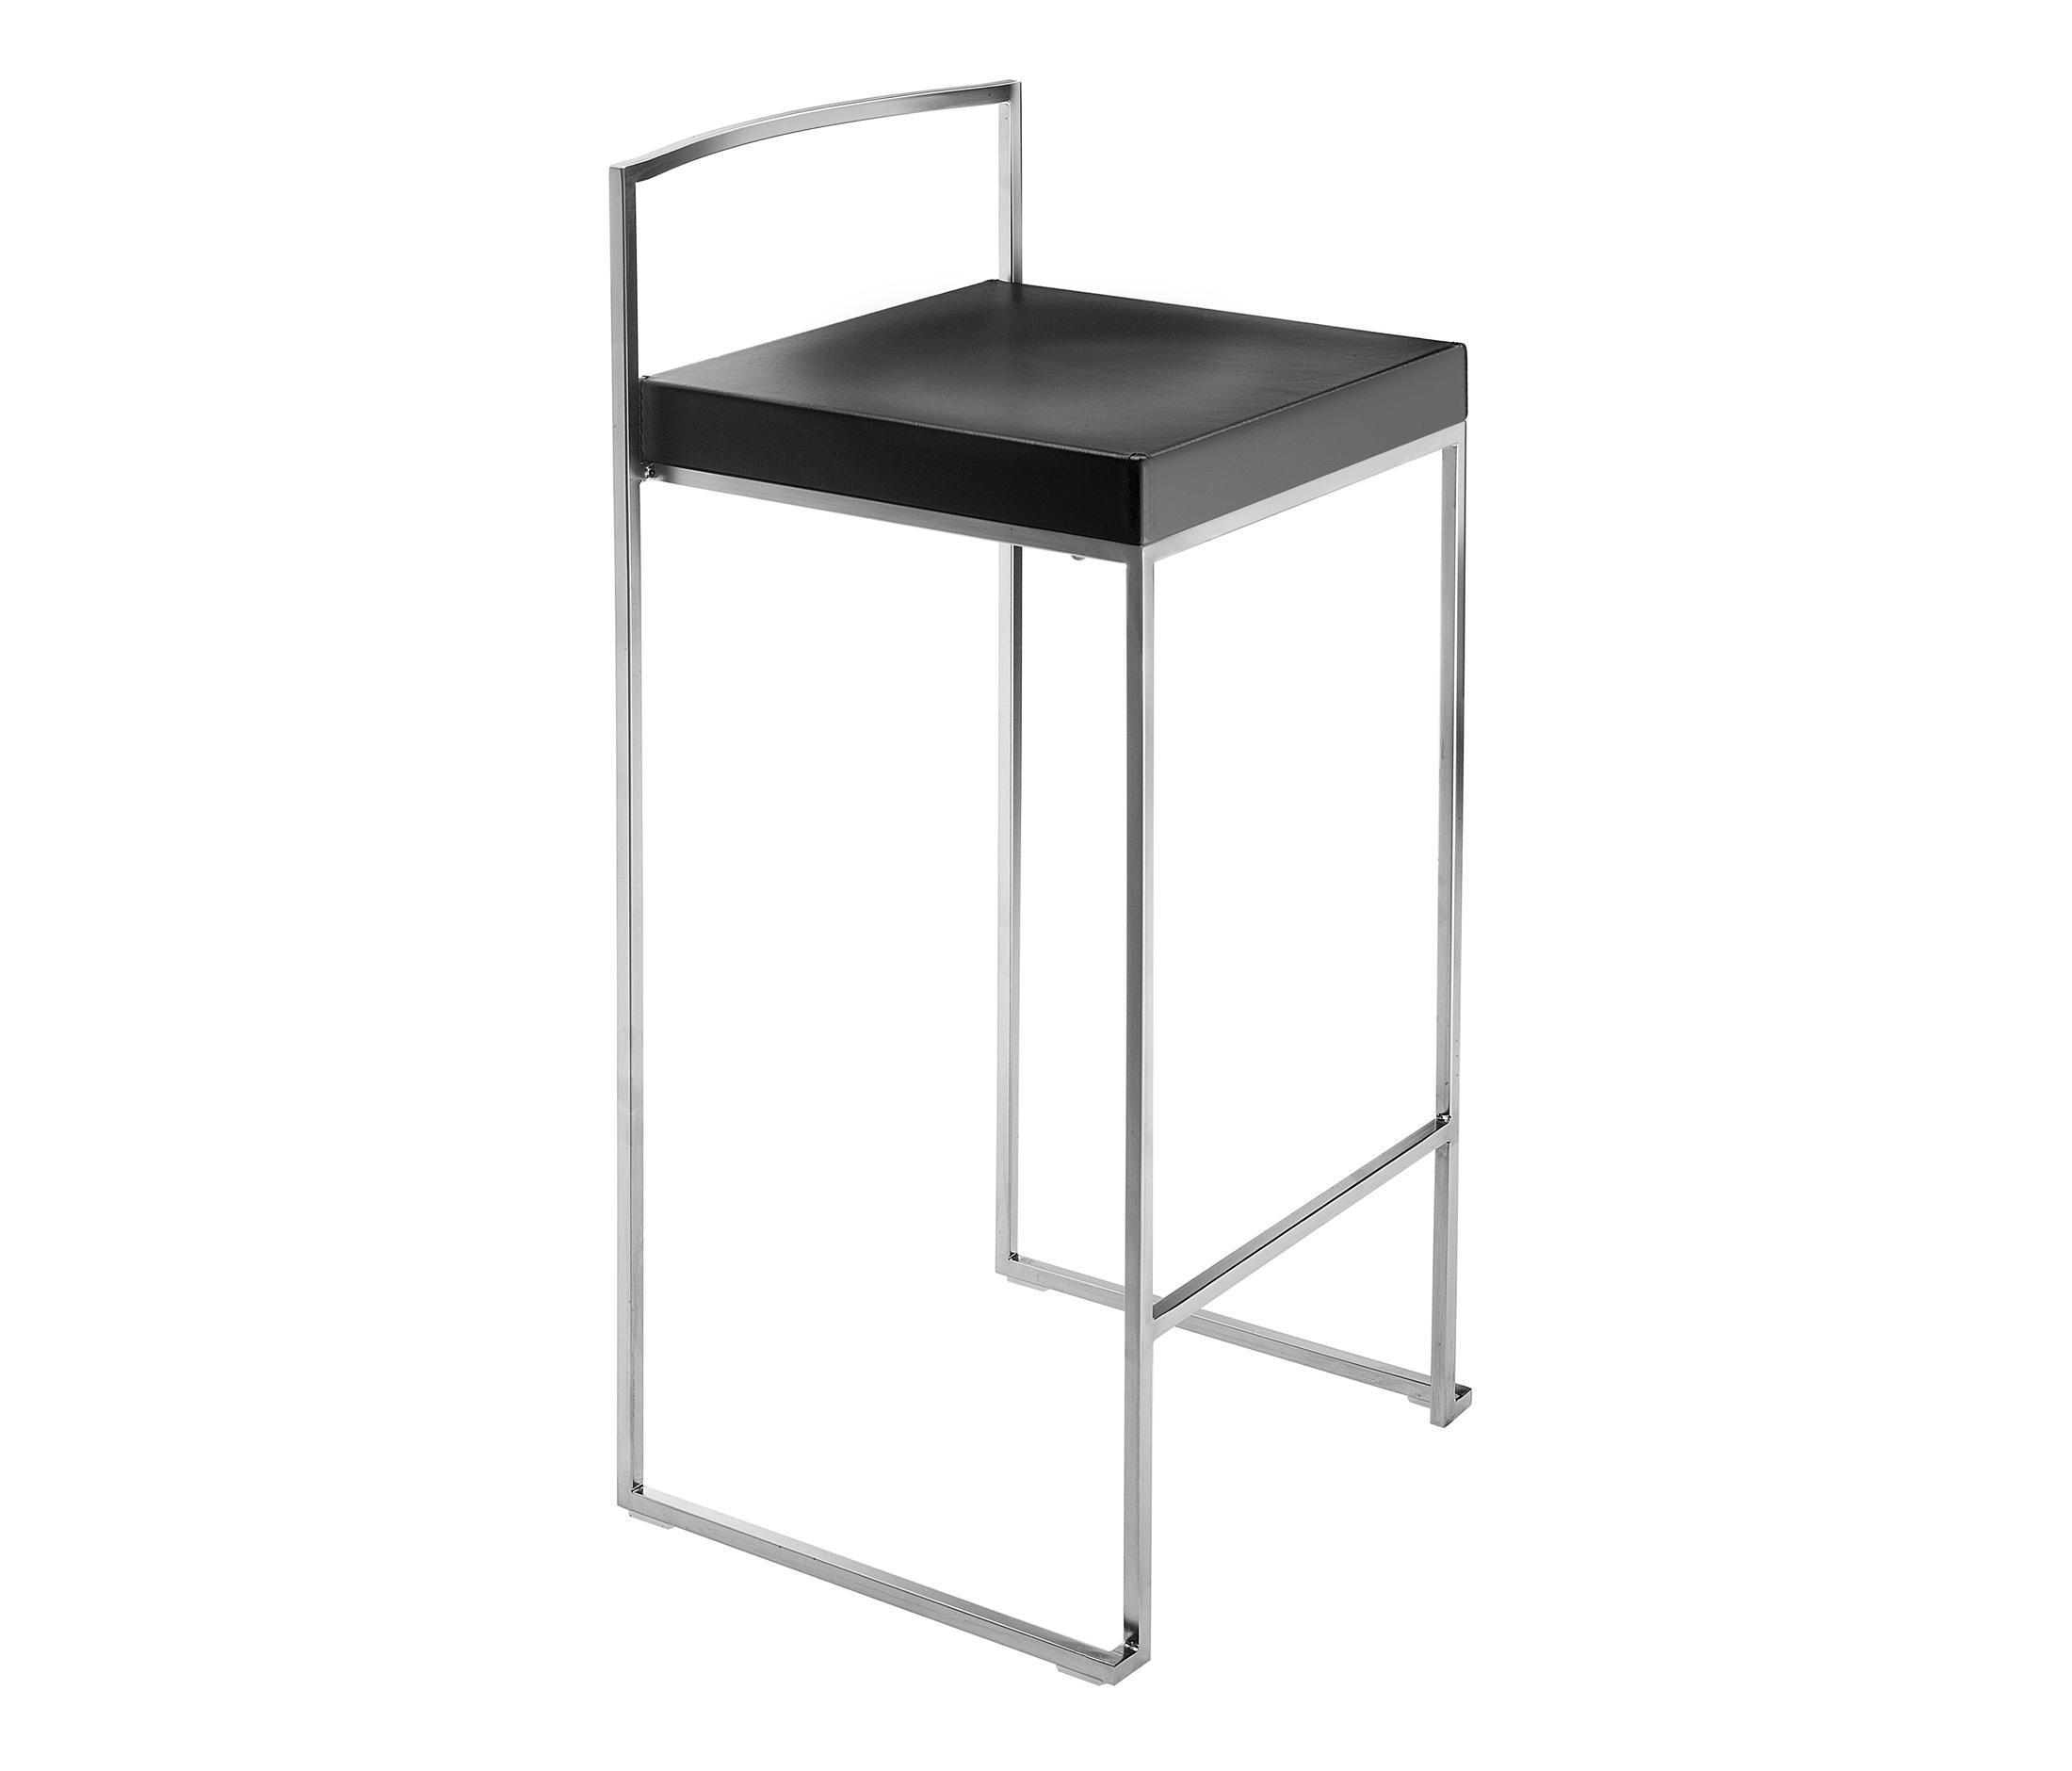 STOOLS - Research and select lapalma products online | Architonic - Cubo | Bar stools | lapalma